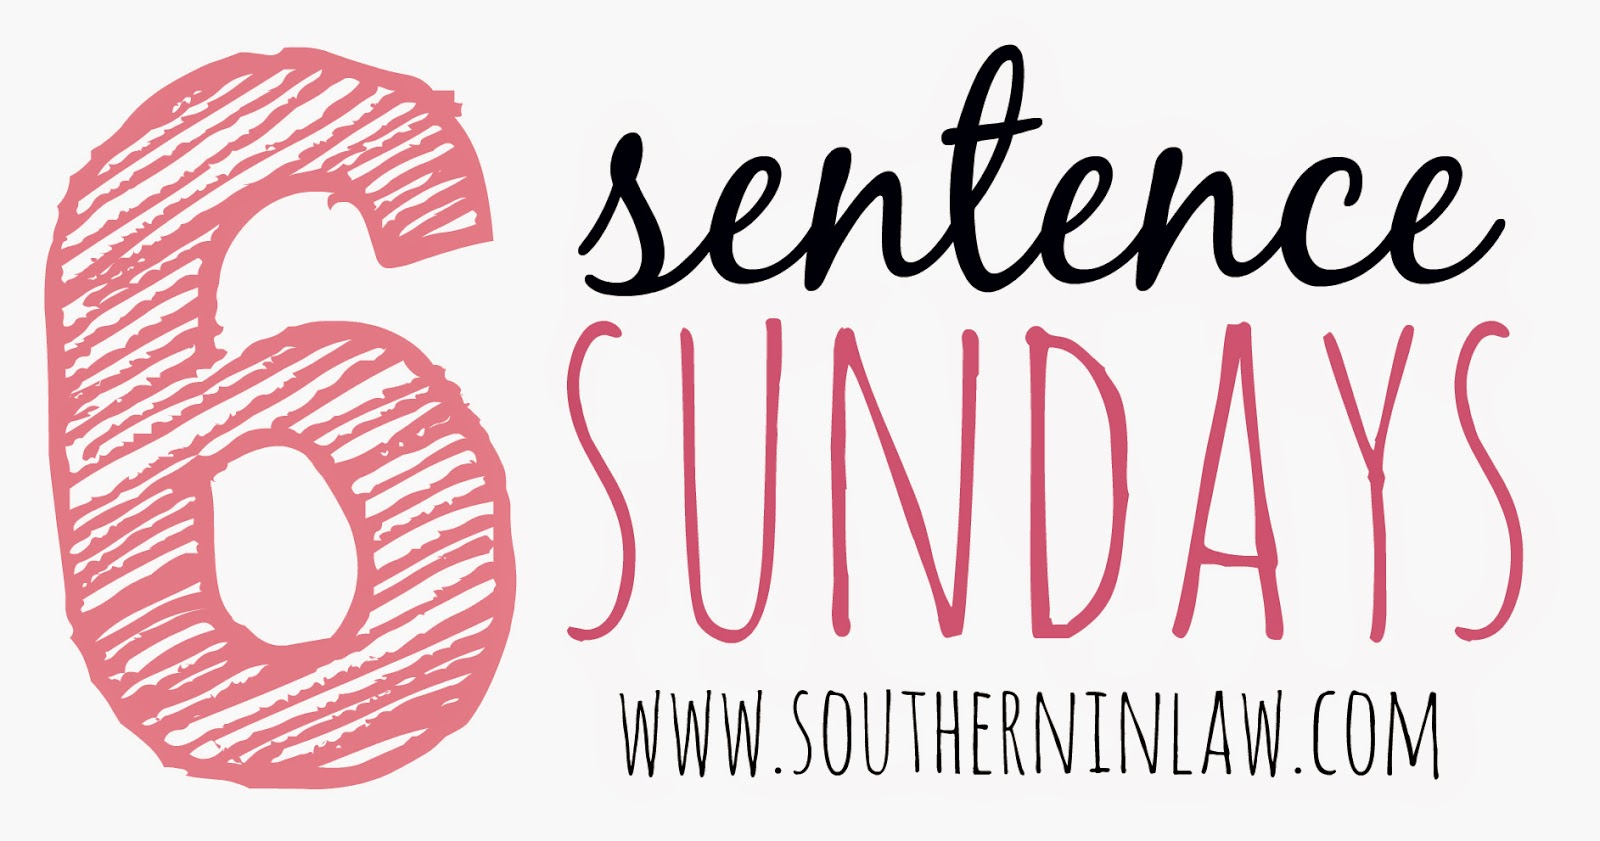 6 Sentence Sunday on Southern In-Law